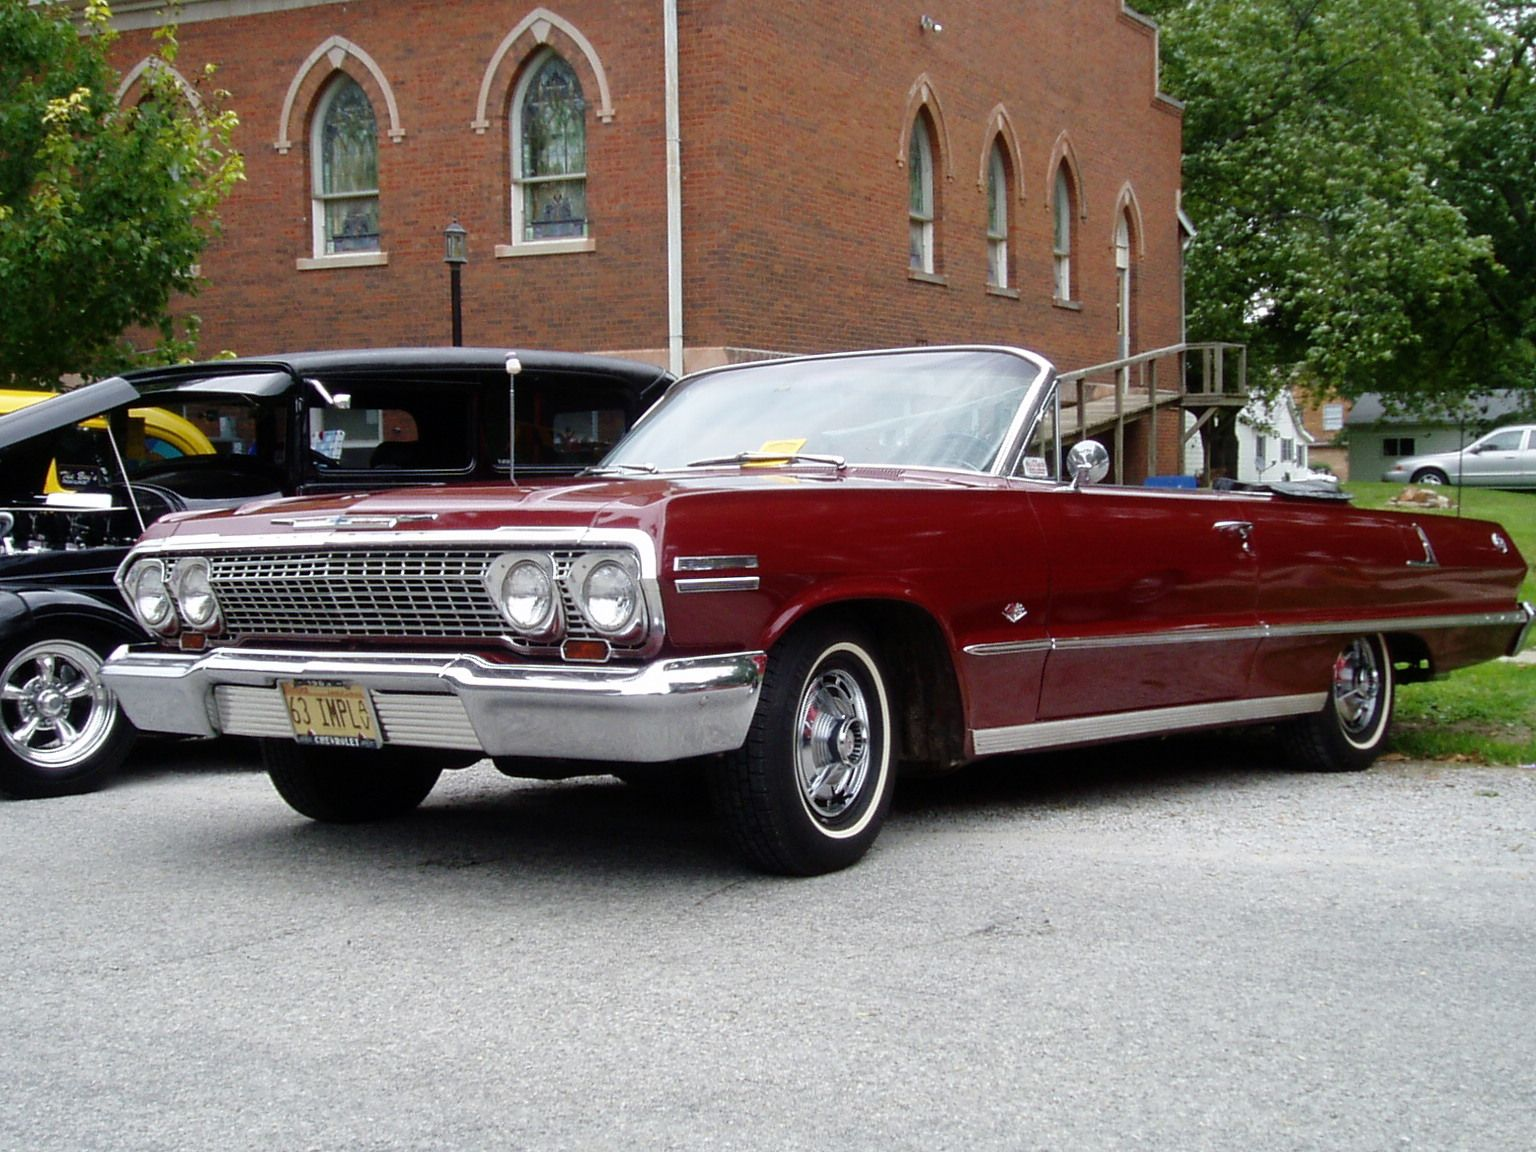 My first car -- 1963 Chevy Impala Convertible - Maroon! Bought it in ...